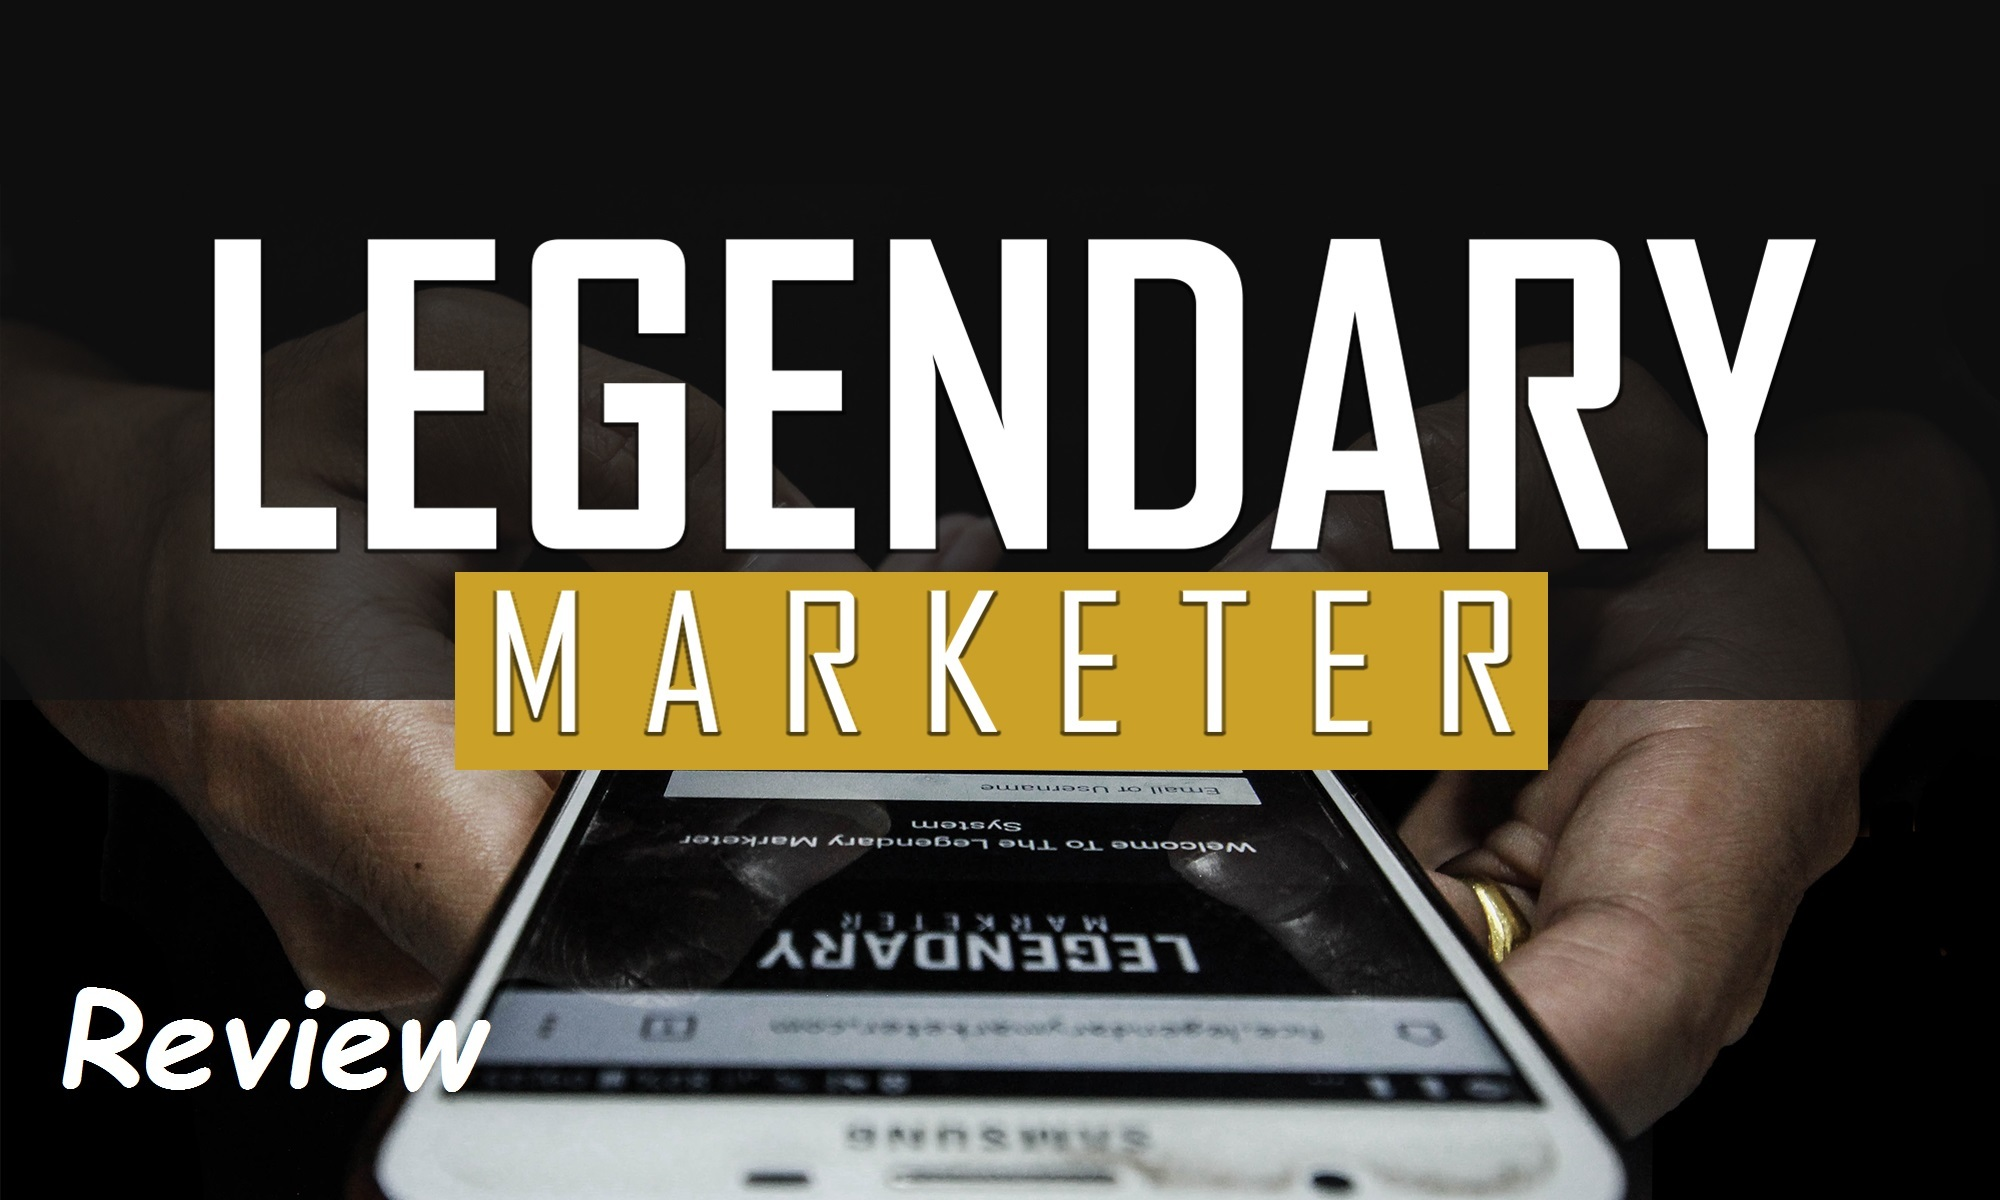 Buy Legendary Marketer Promo Online Coupons 100 Off